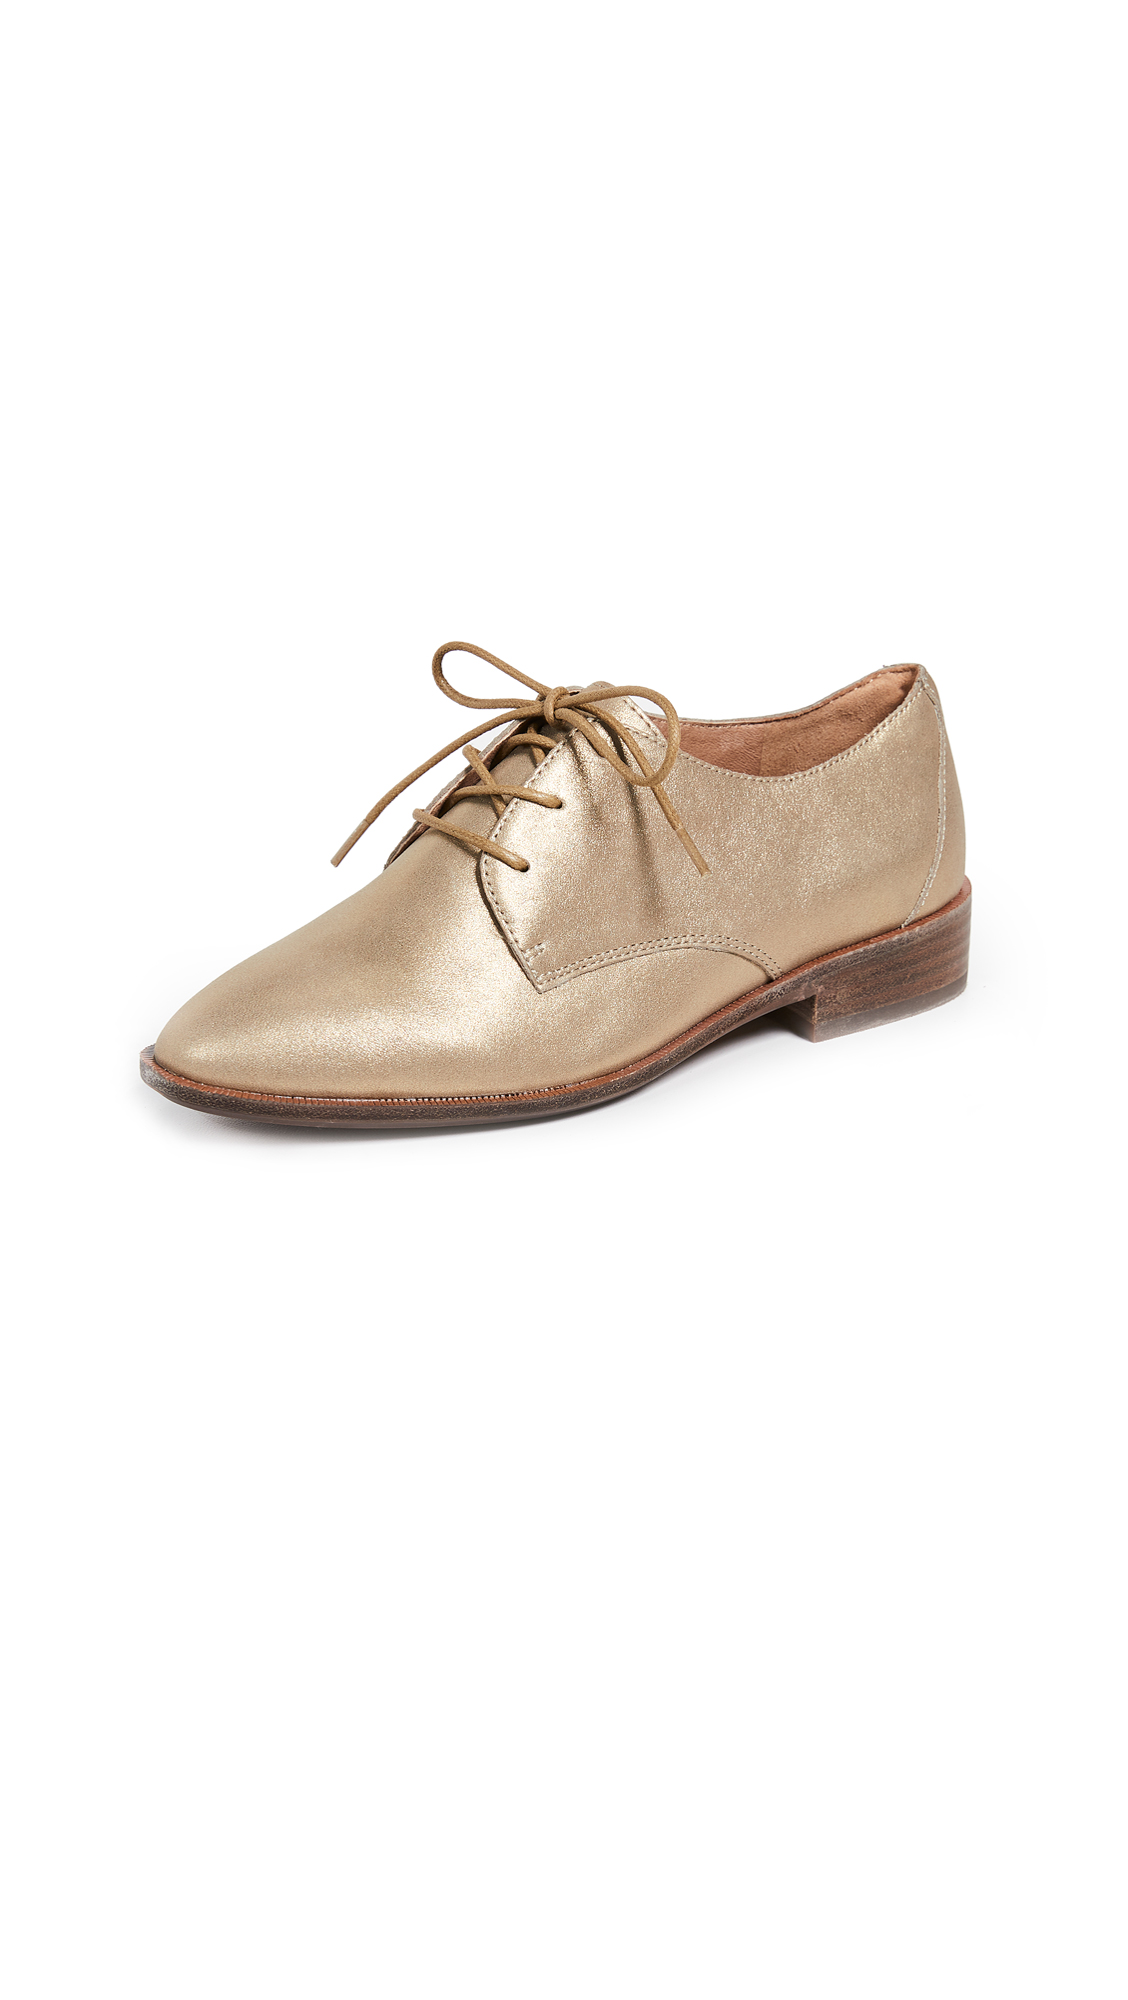 Madewell Pauline Oxfords - Olive Bronze